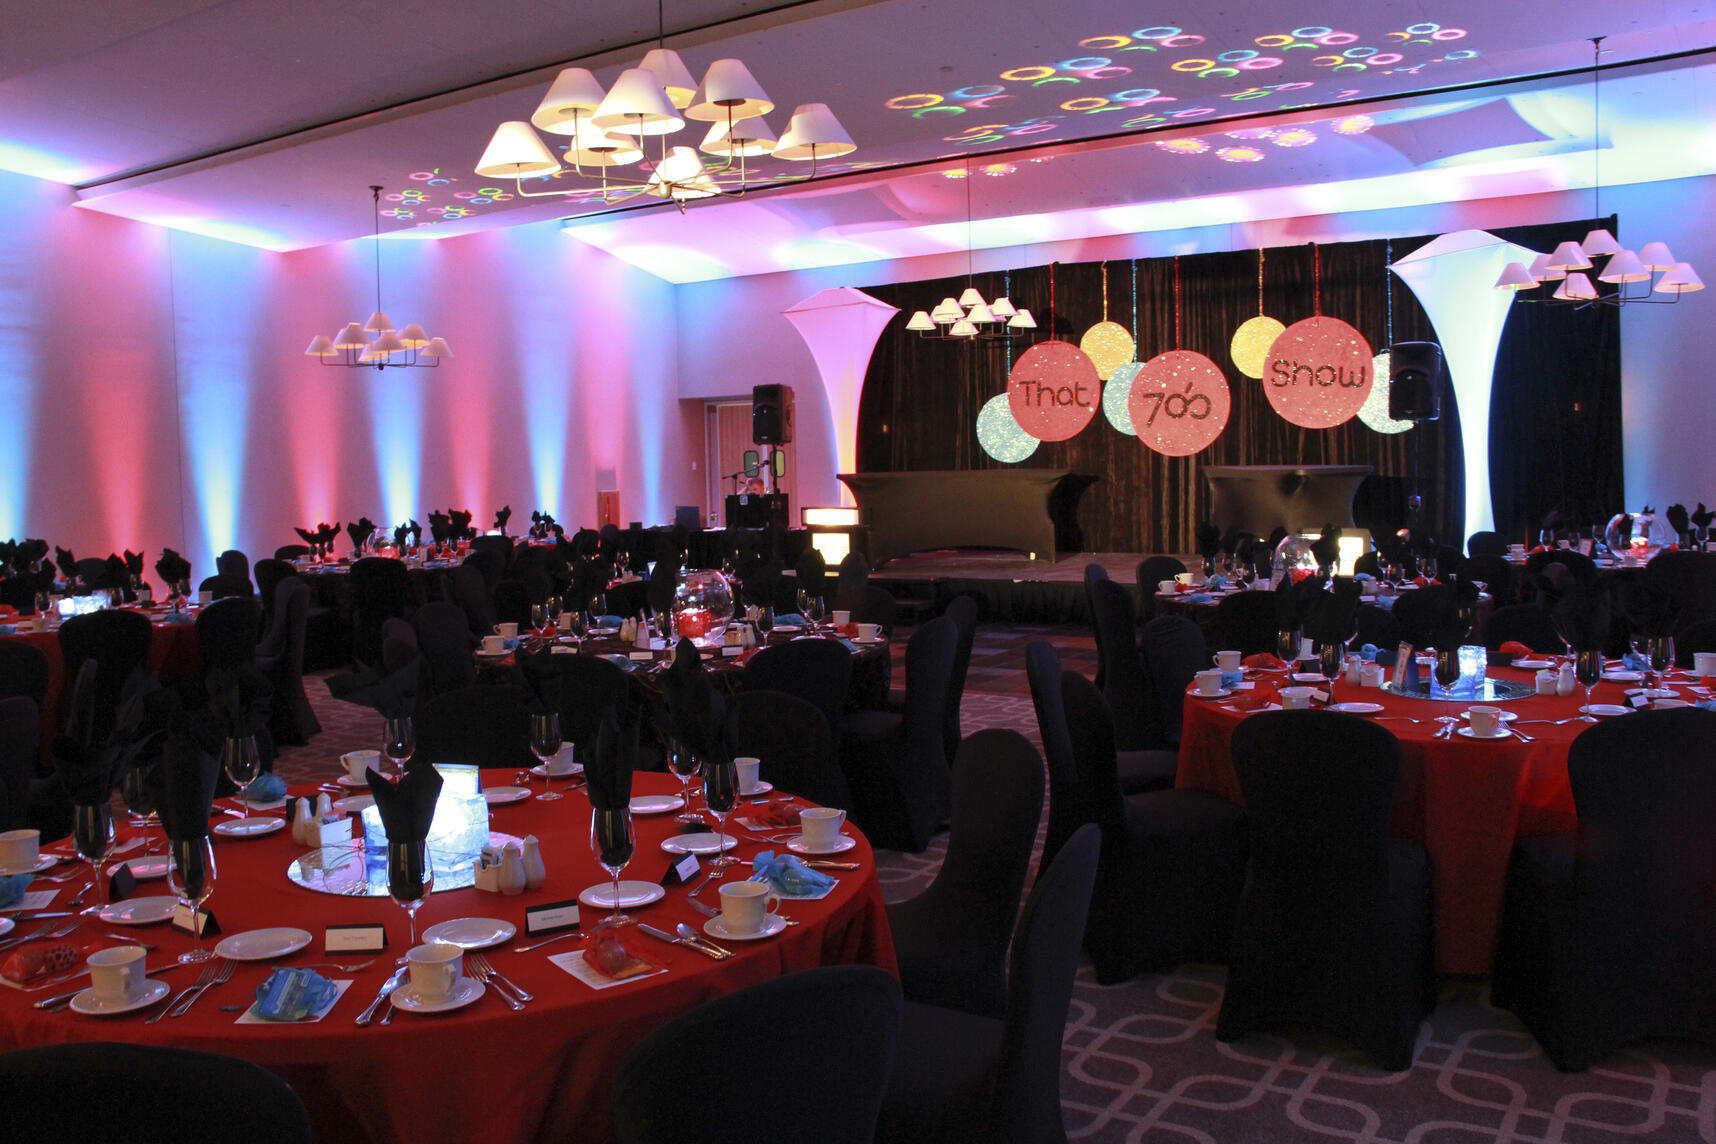 Game Show Themed Fundraising Gala in the ballroom at Hazeltine National Golf Club